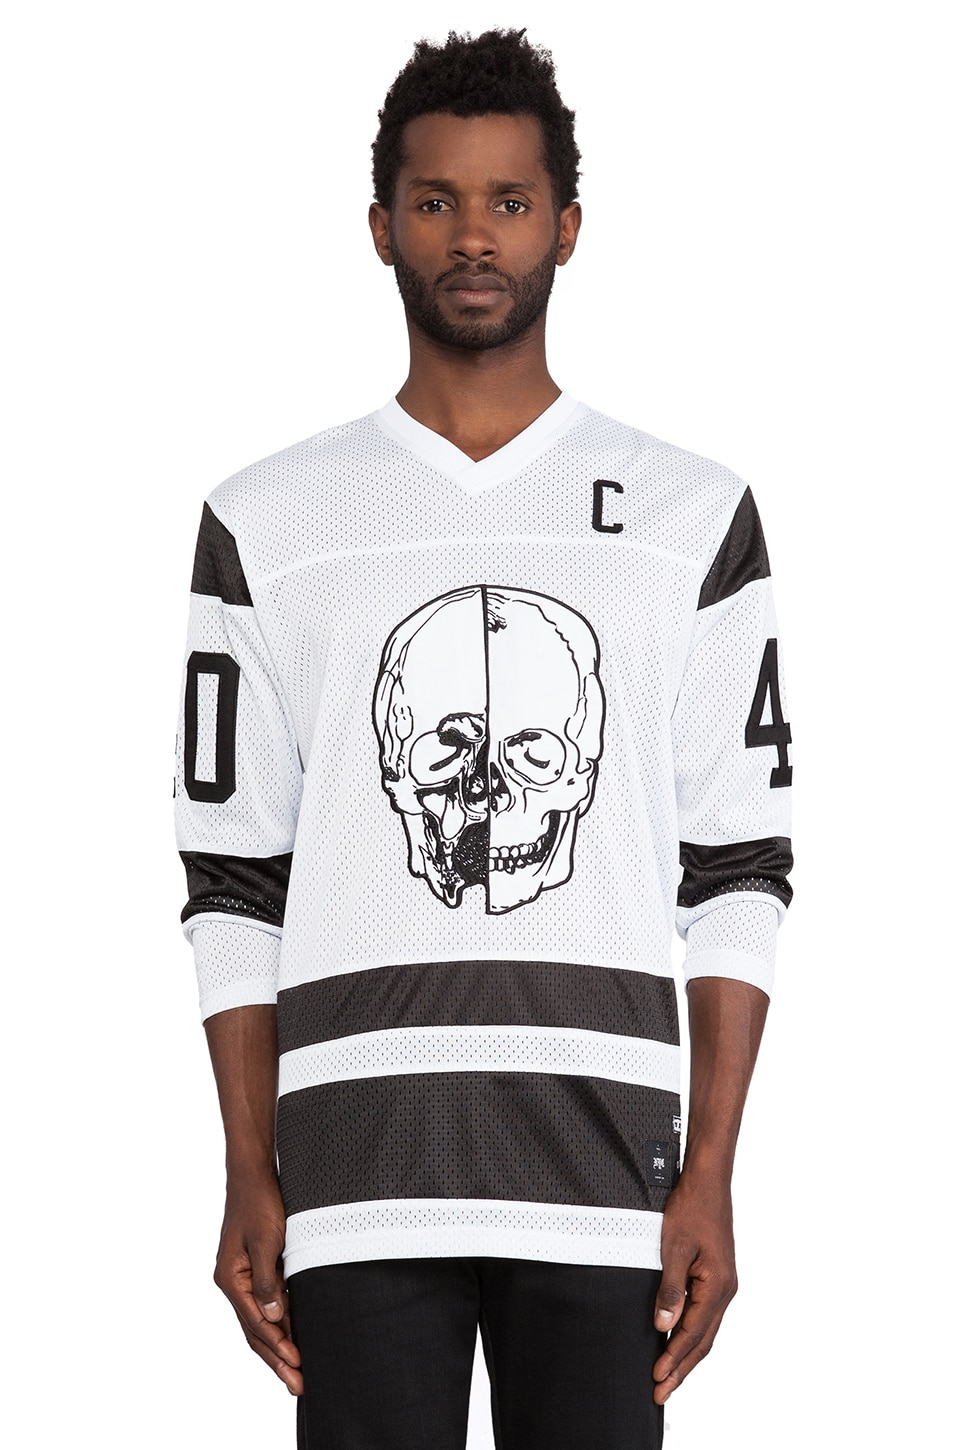 40 OZ NY Skull Hockey Jersey in White